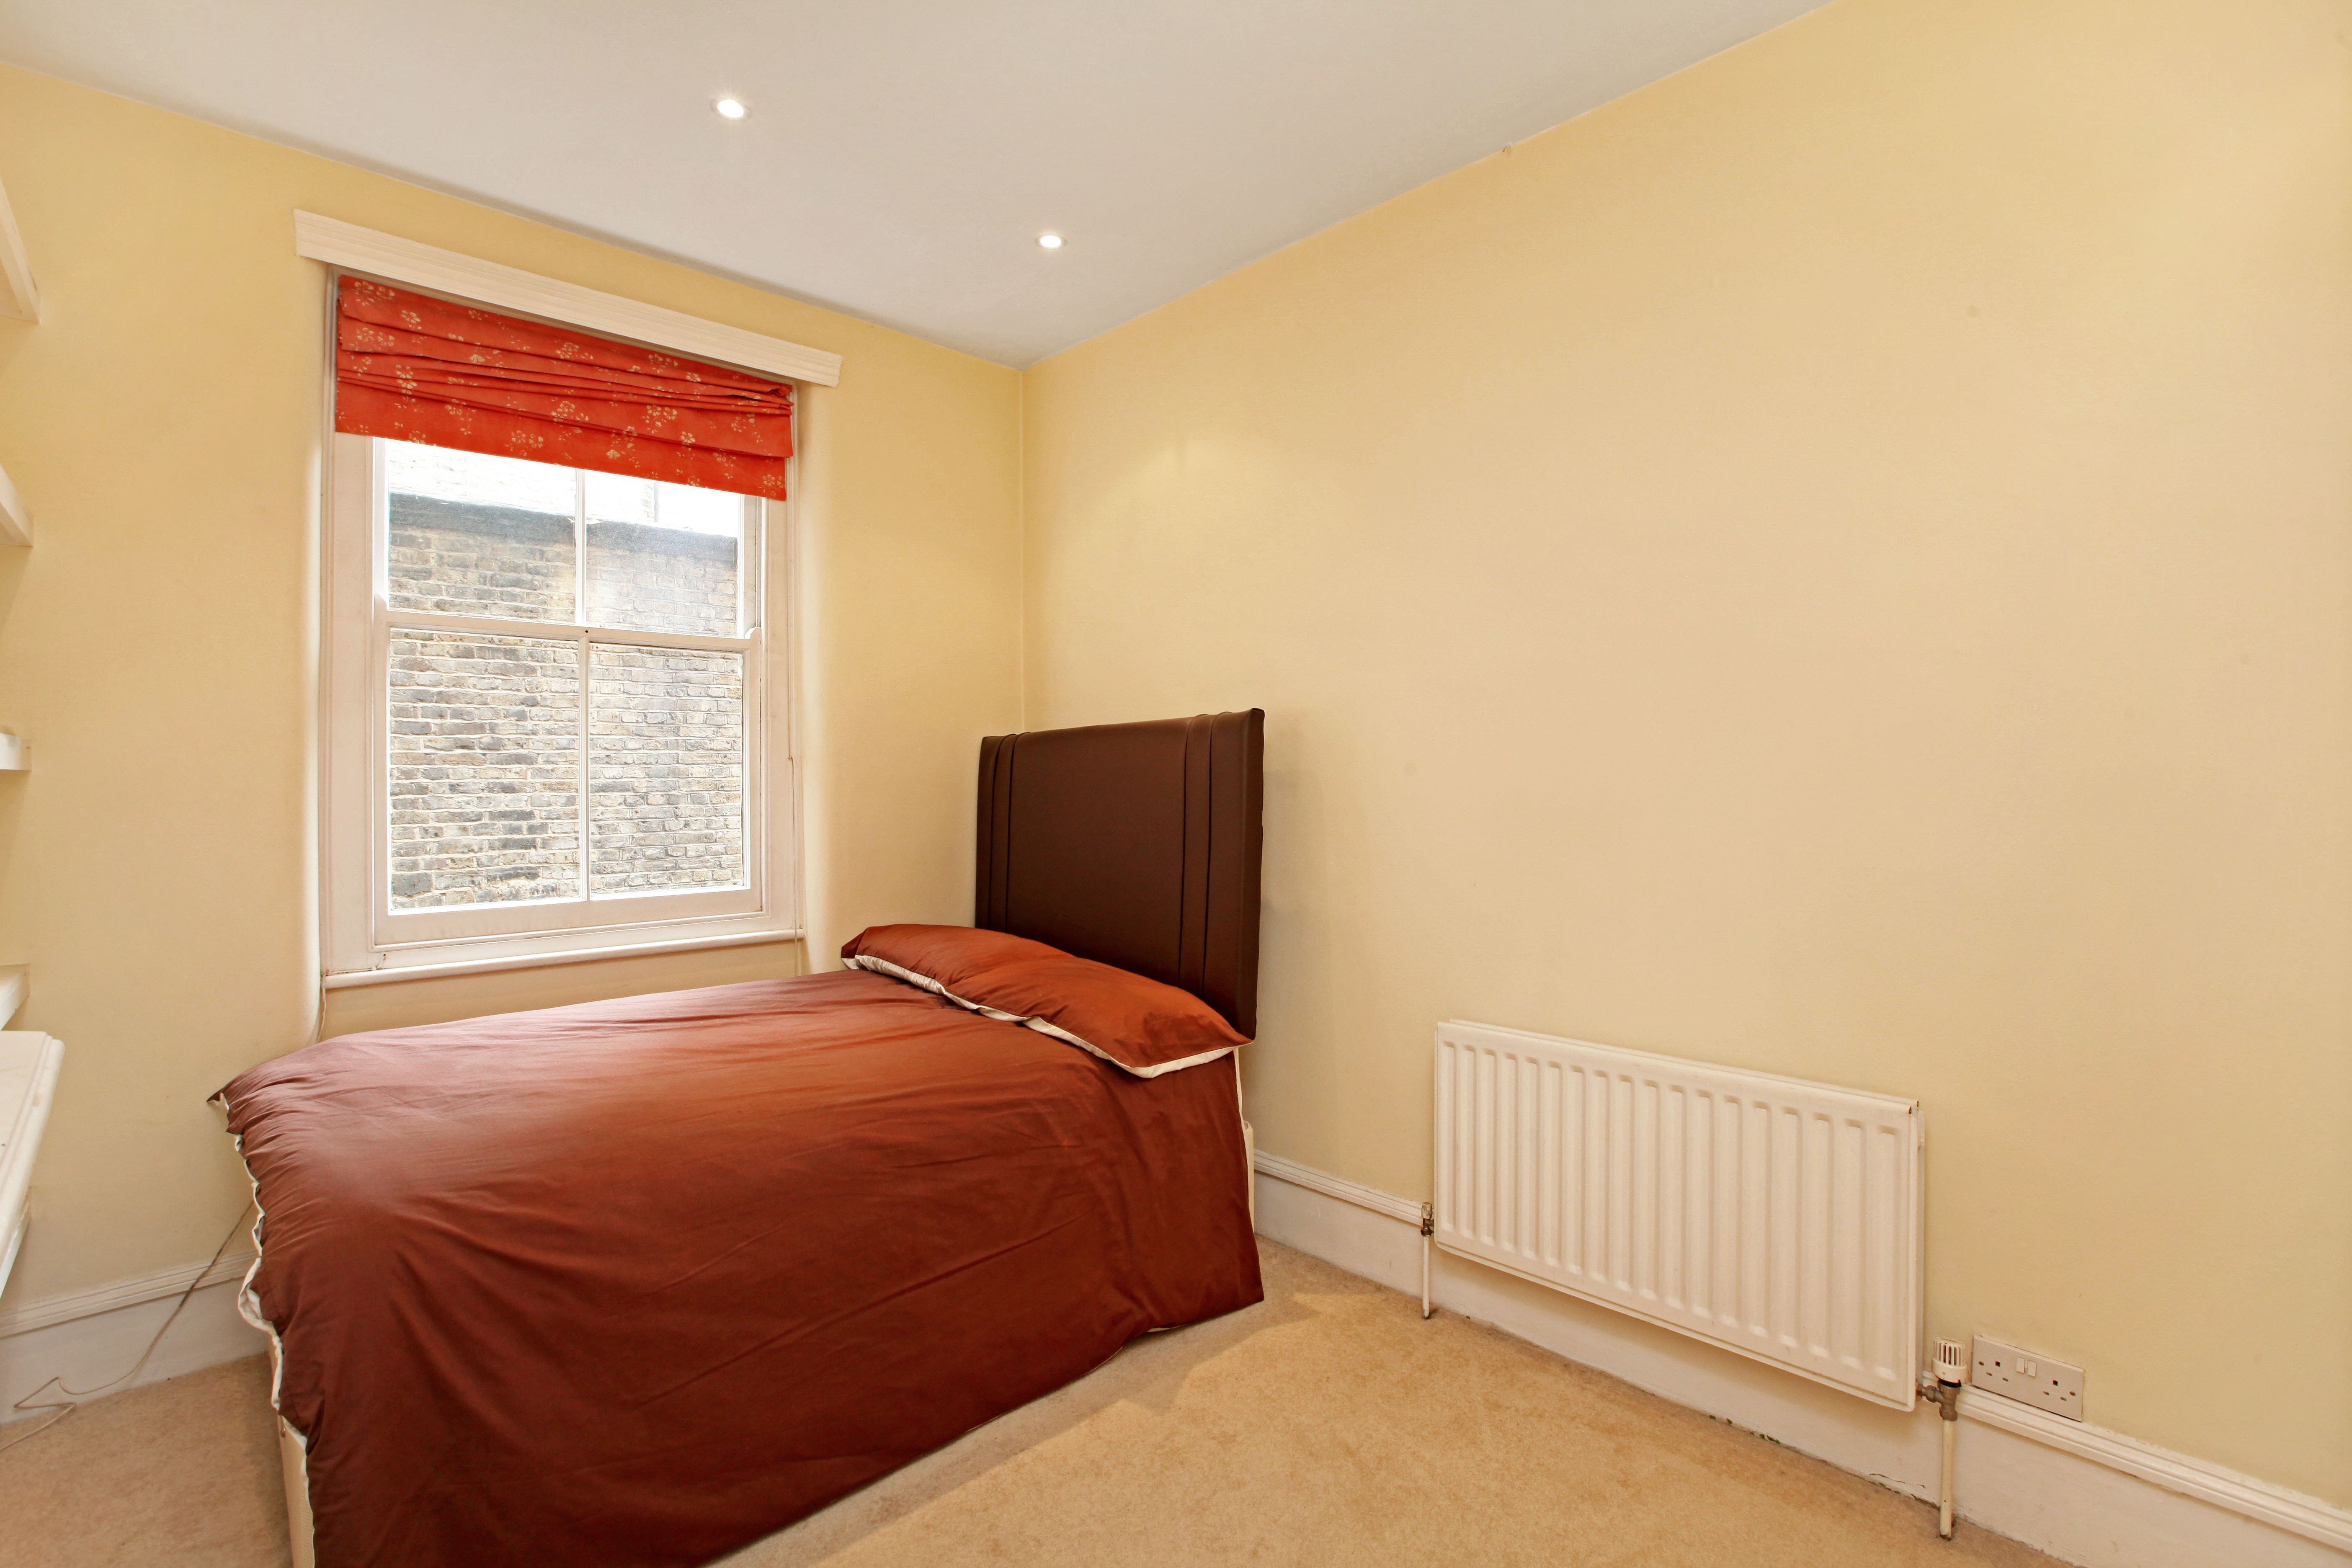 Best 3 Bed Flat To Rent Lillie Road London Sw6 7Pq With Pictures